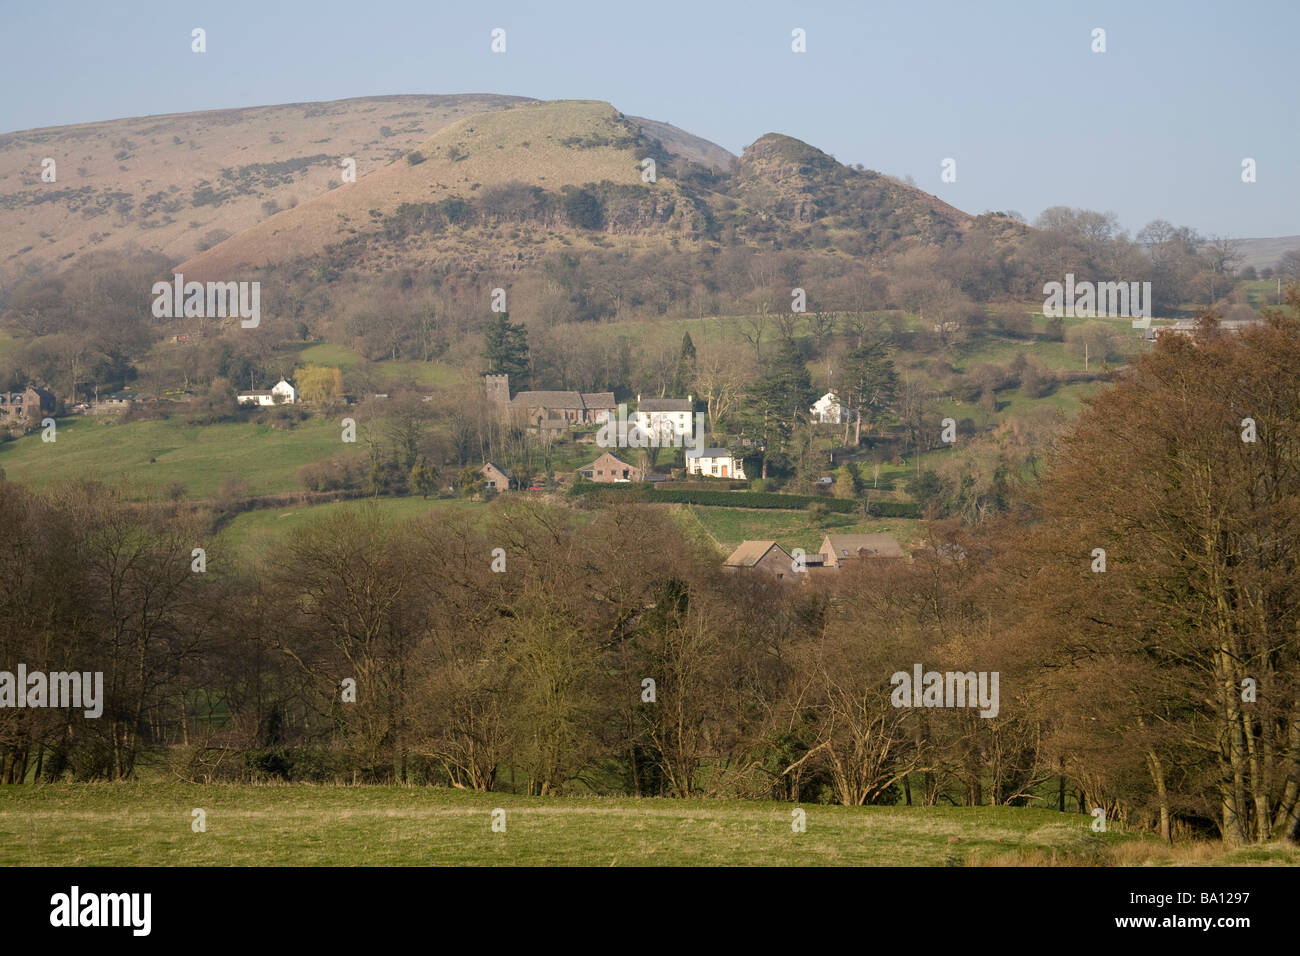 Cwmyoy Monmouthshire Wales UK March Looking across to this small village on the Cistercian Way in Brecon Beacons - Stock Image